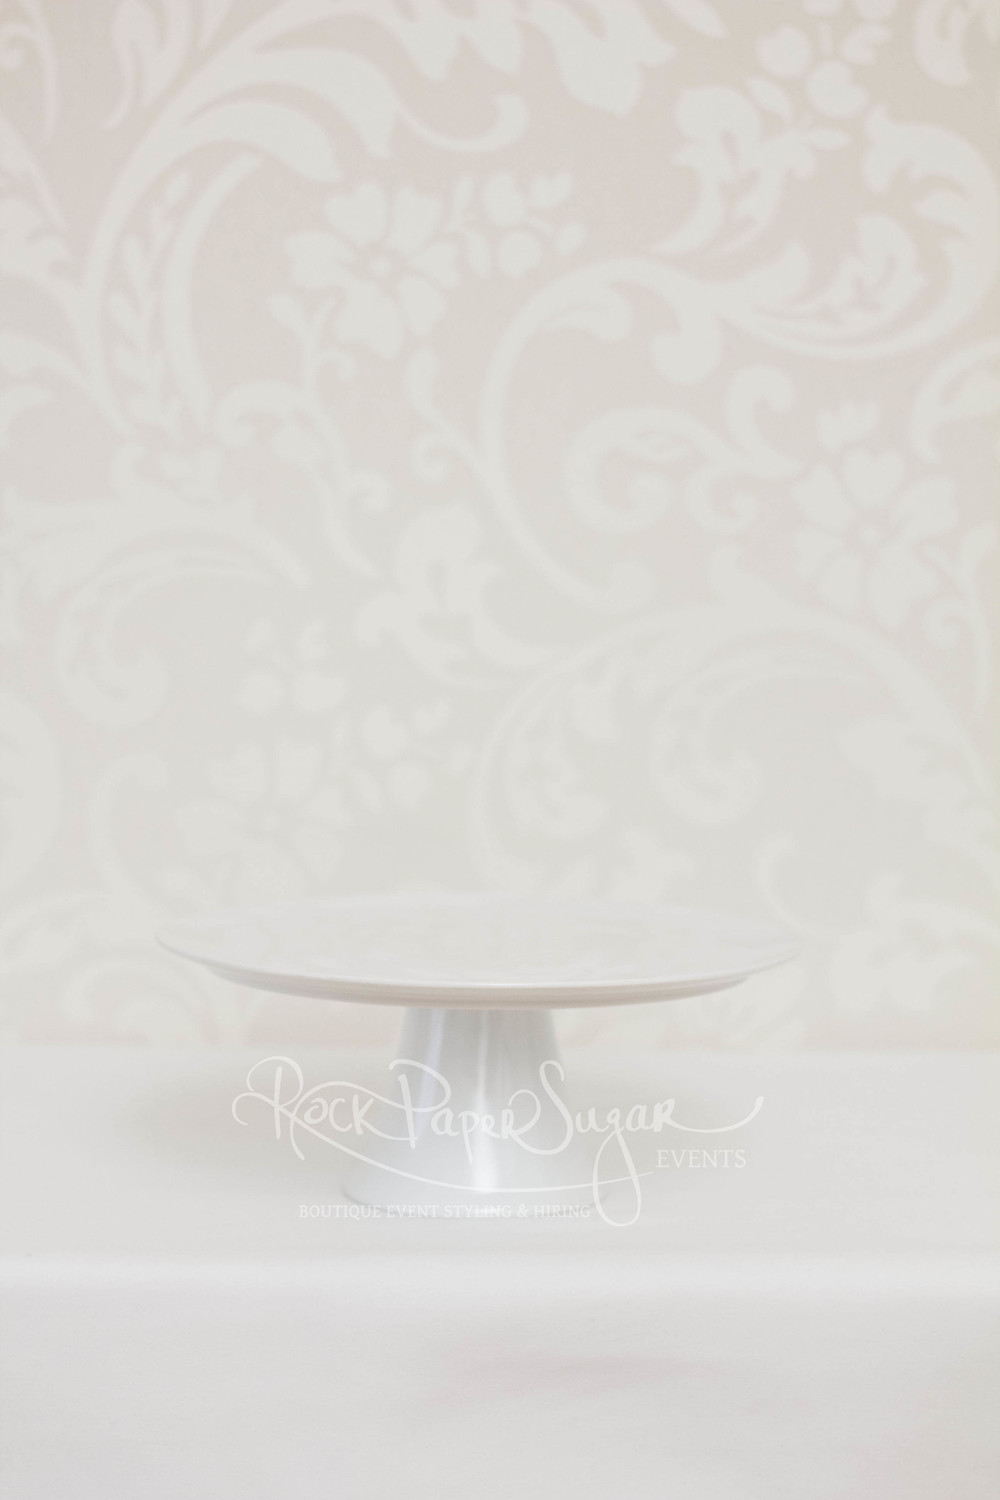 Rock Paper Sugar Events Cake Stands 012.jpg